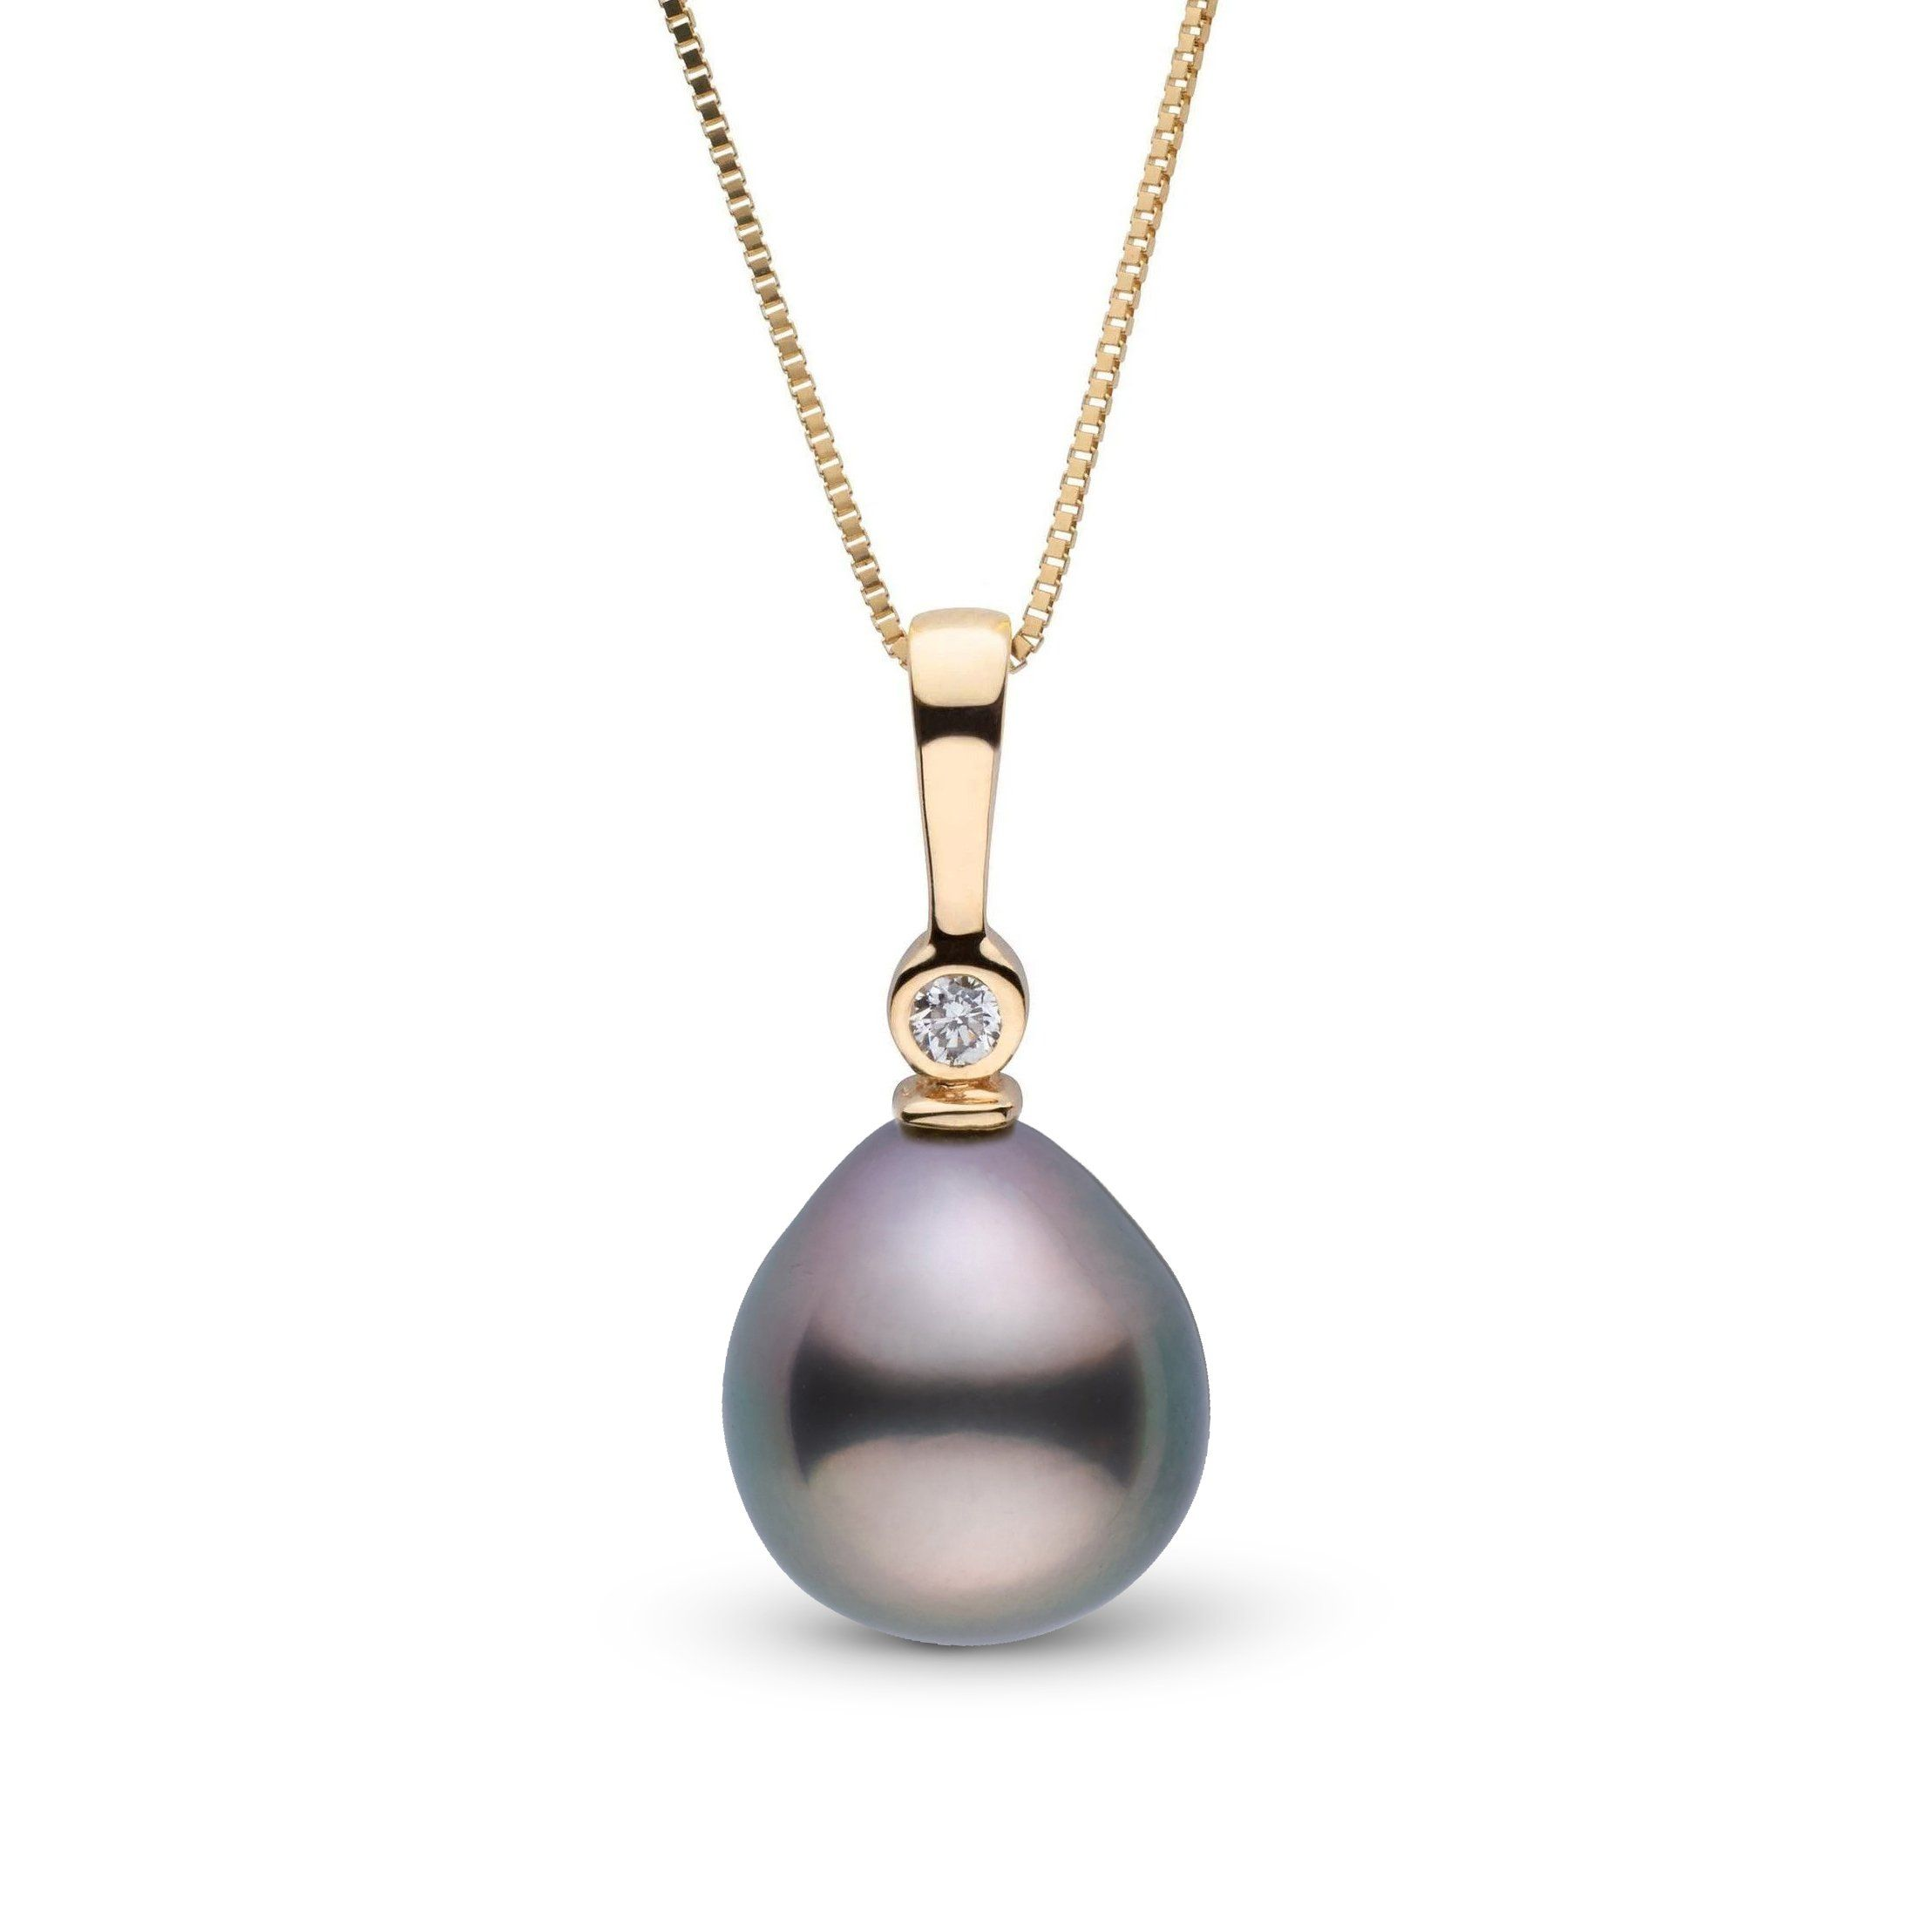 Aspire Collection 8.0-9.0 mm Drop Tahitian Pearl & Diamond Pendant